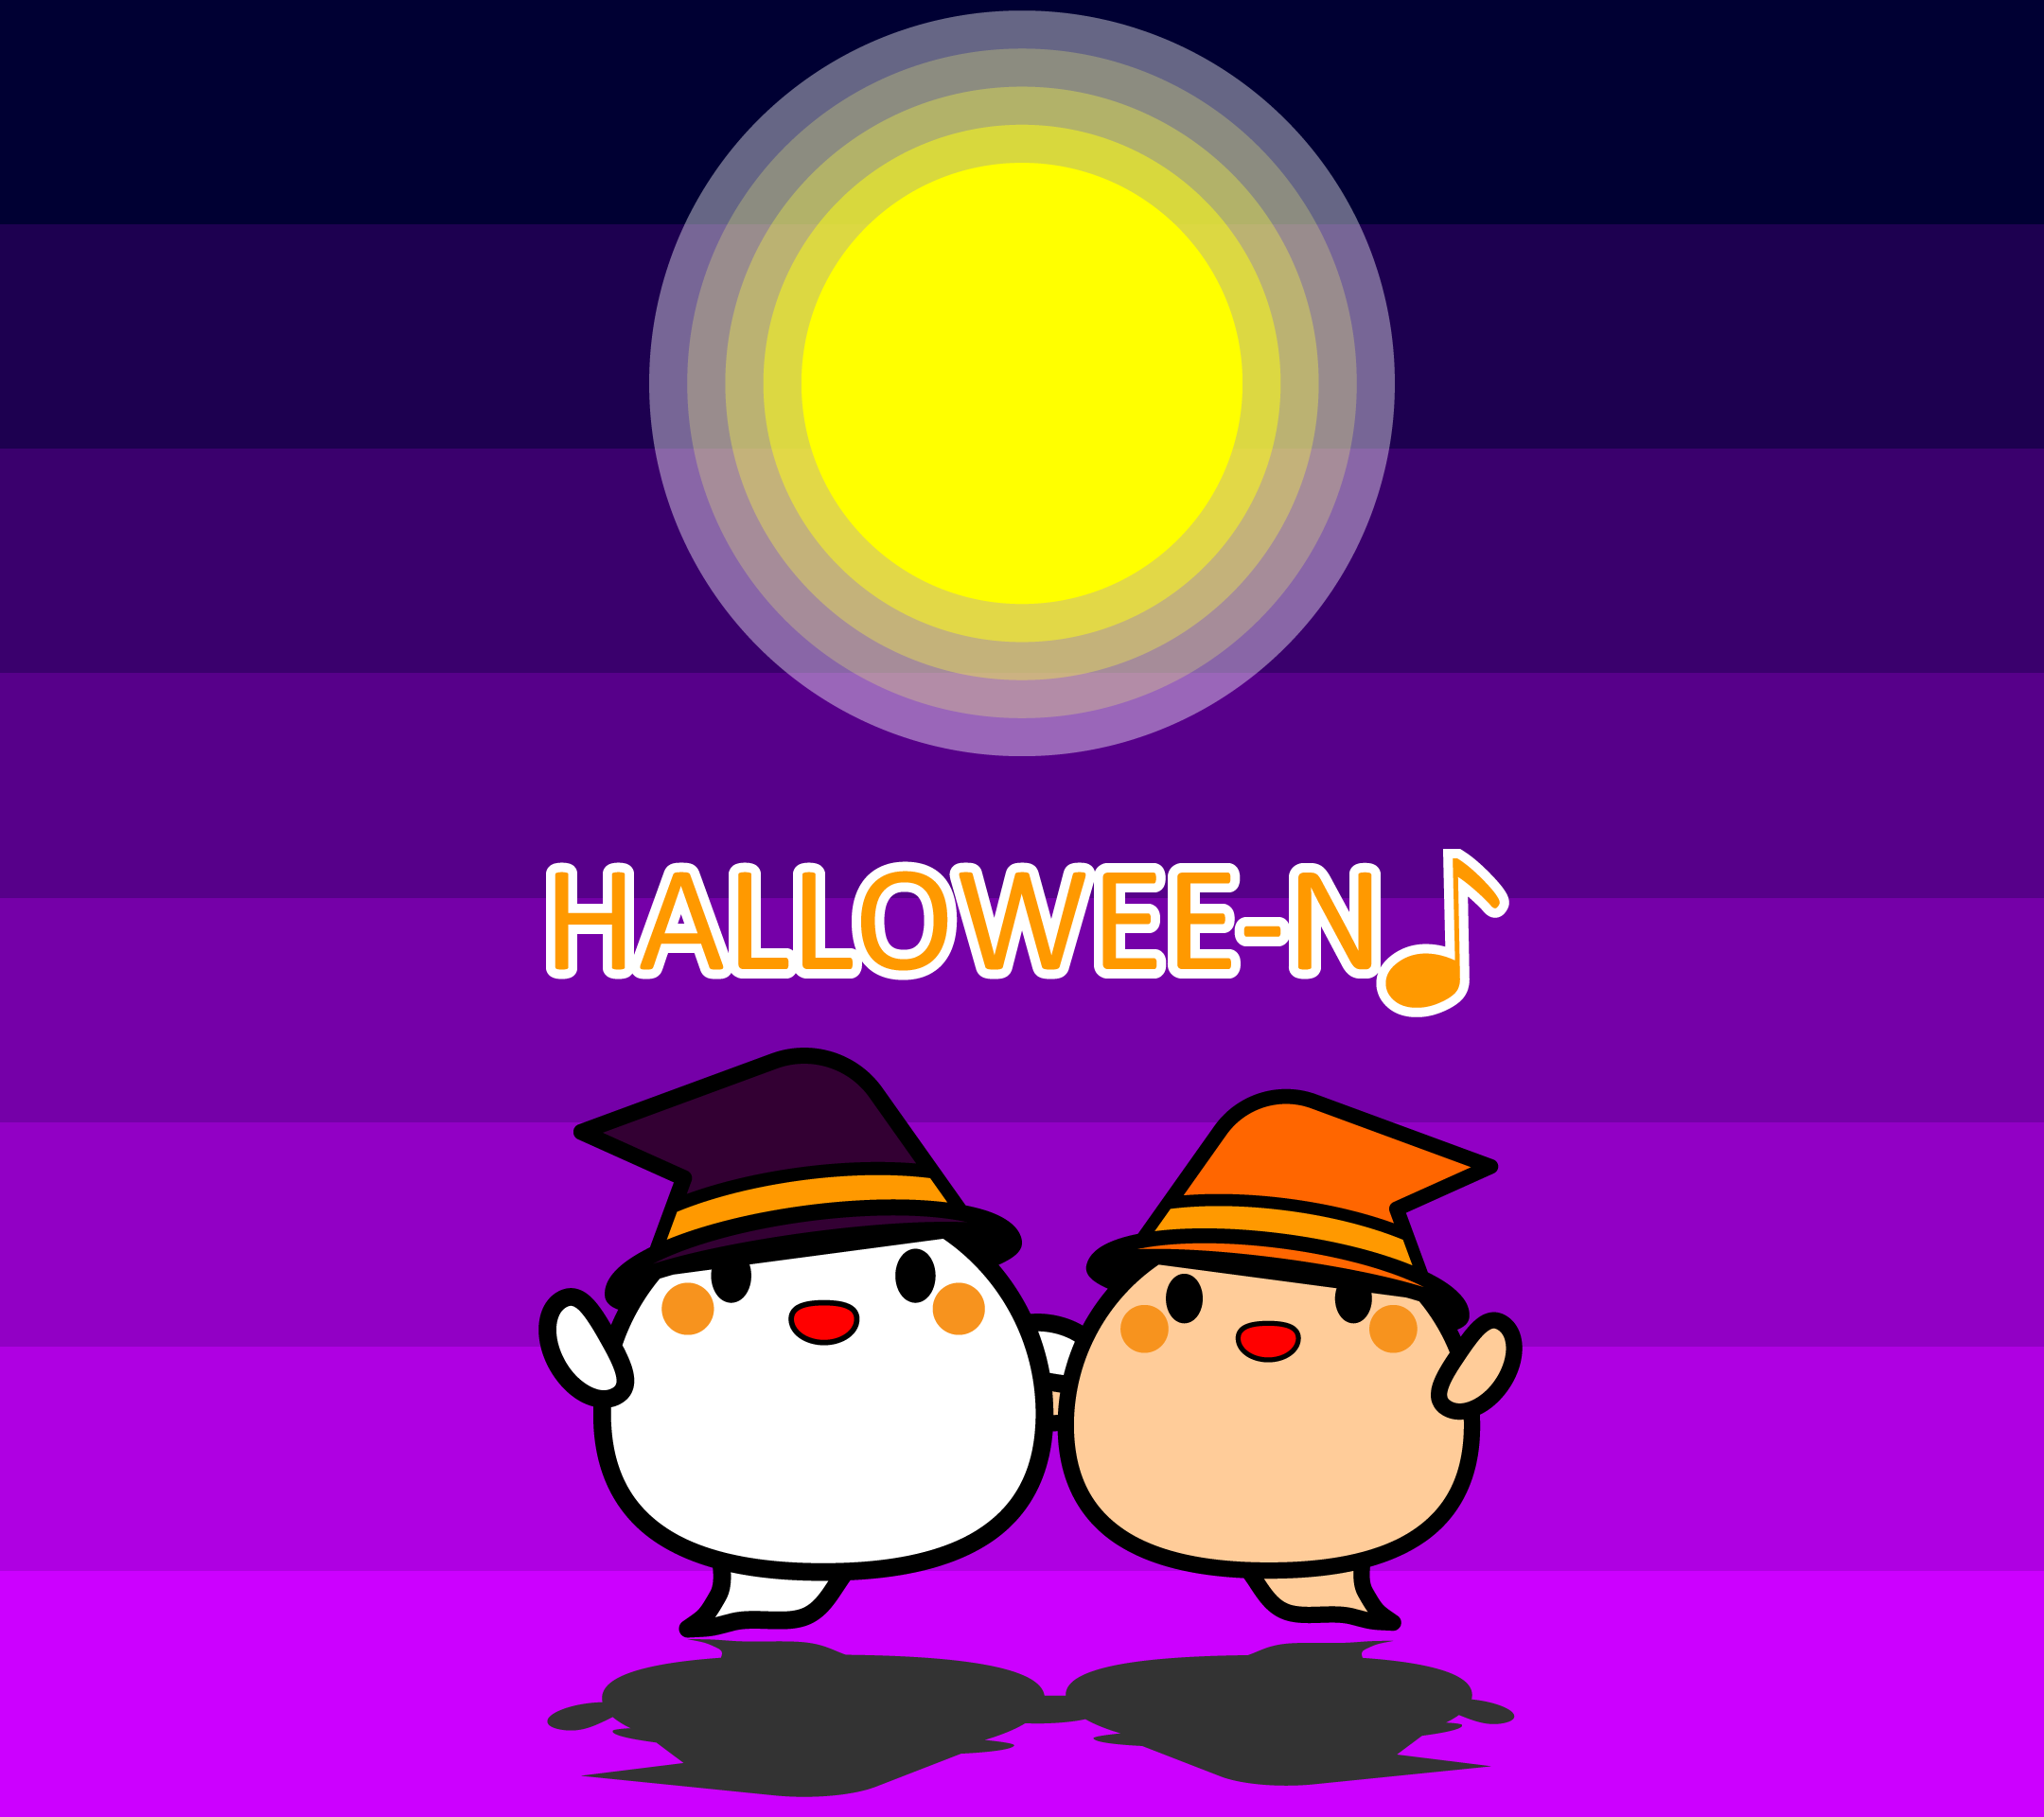 wallpaper2_hallowee-n-android